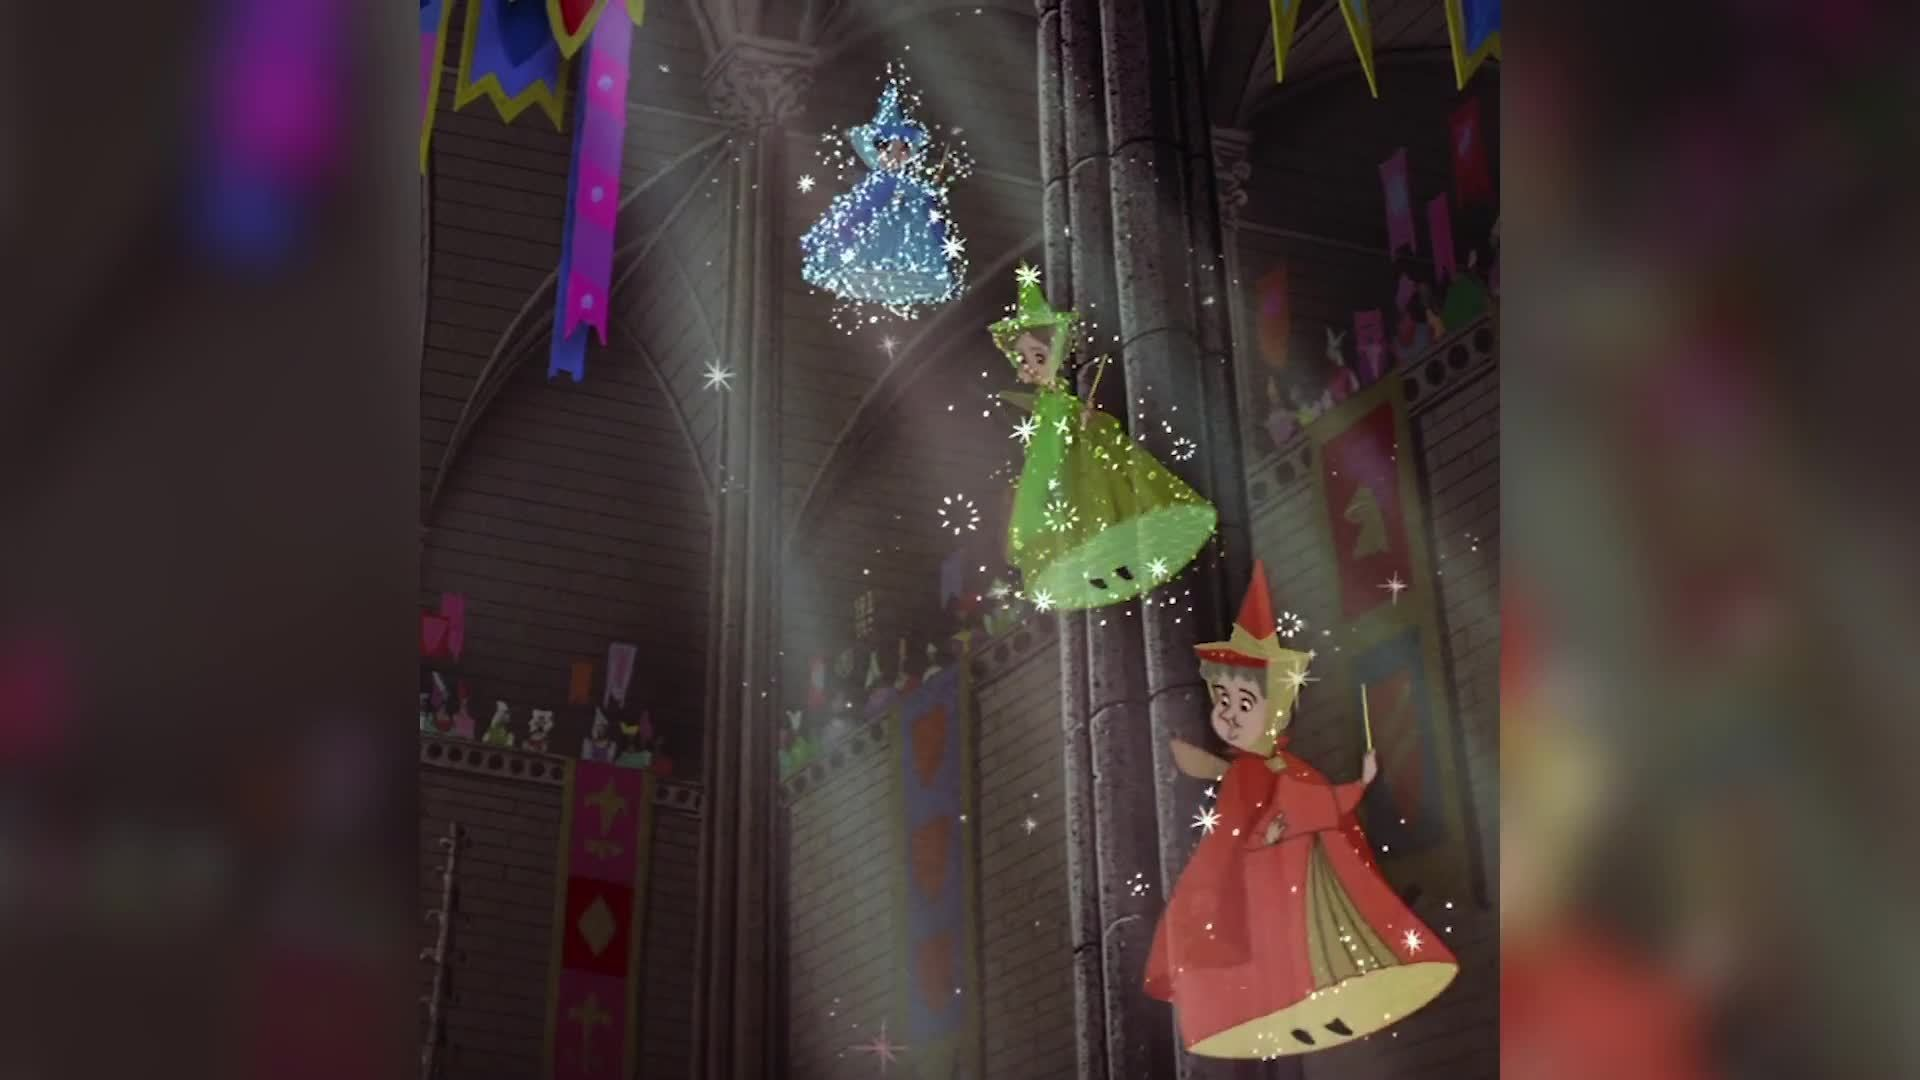 Sleeping Beauty | This Day in Disney History by Oh My Disney